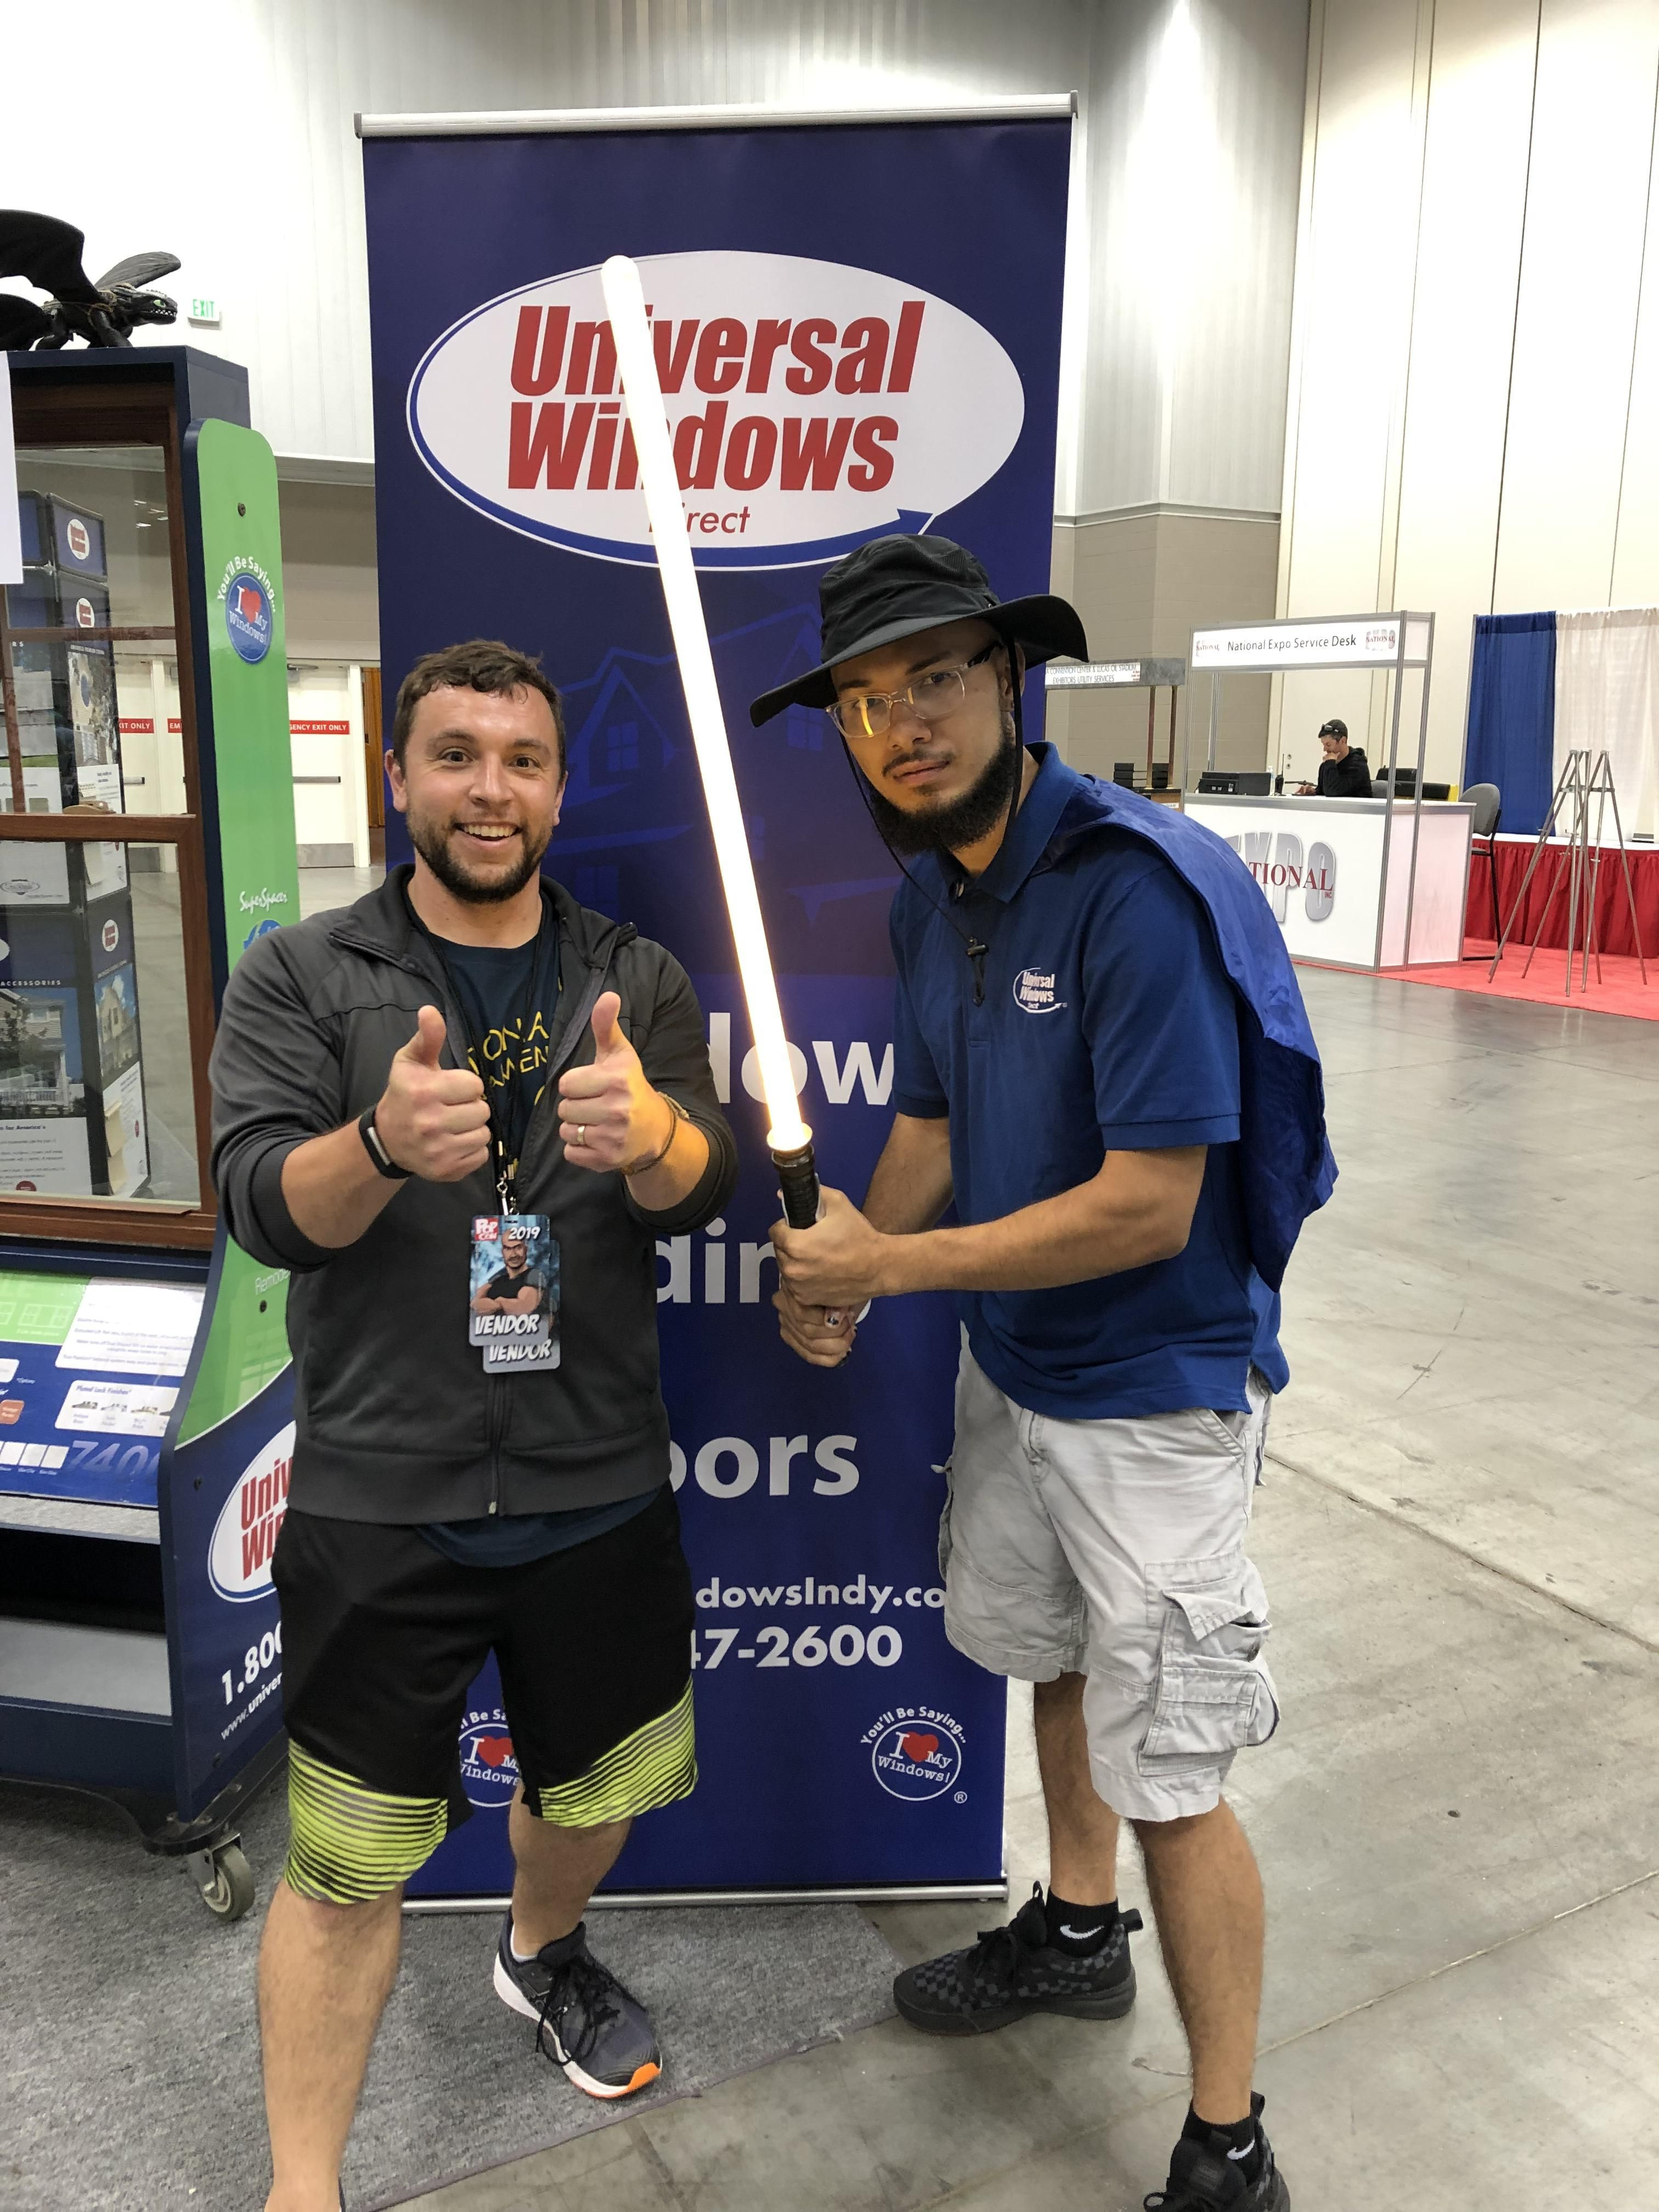 I noticed the window company at my local geek convention was lonely. I was apparently the first person to ask him for a picture.